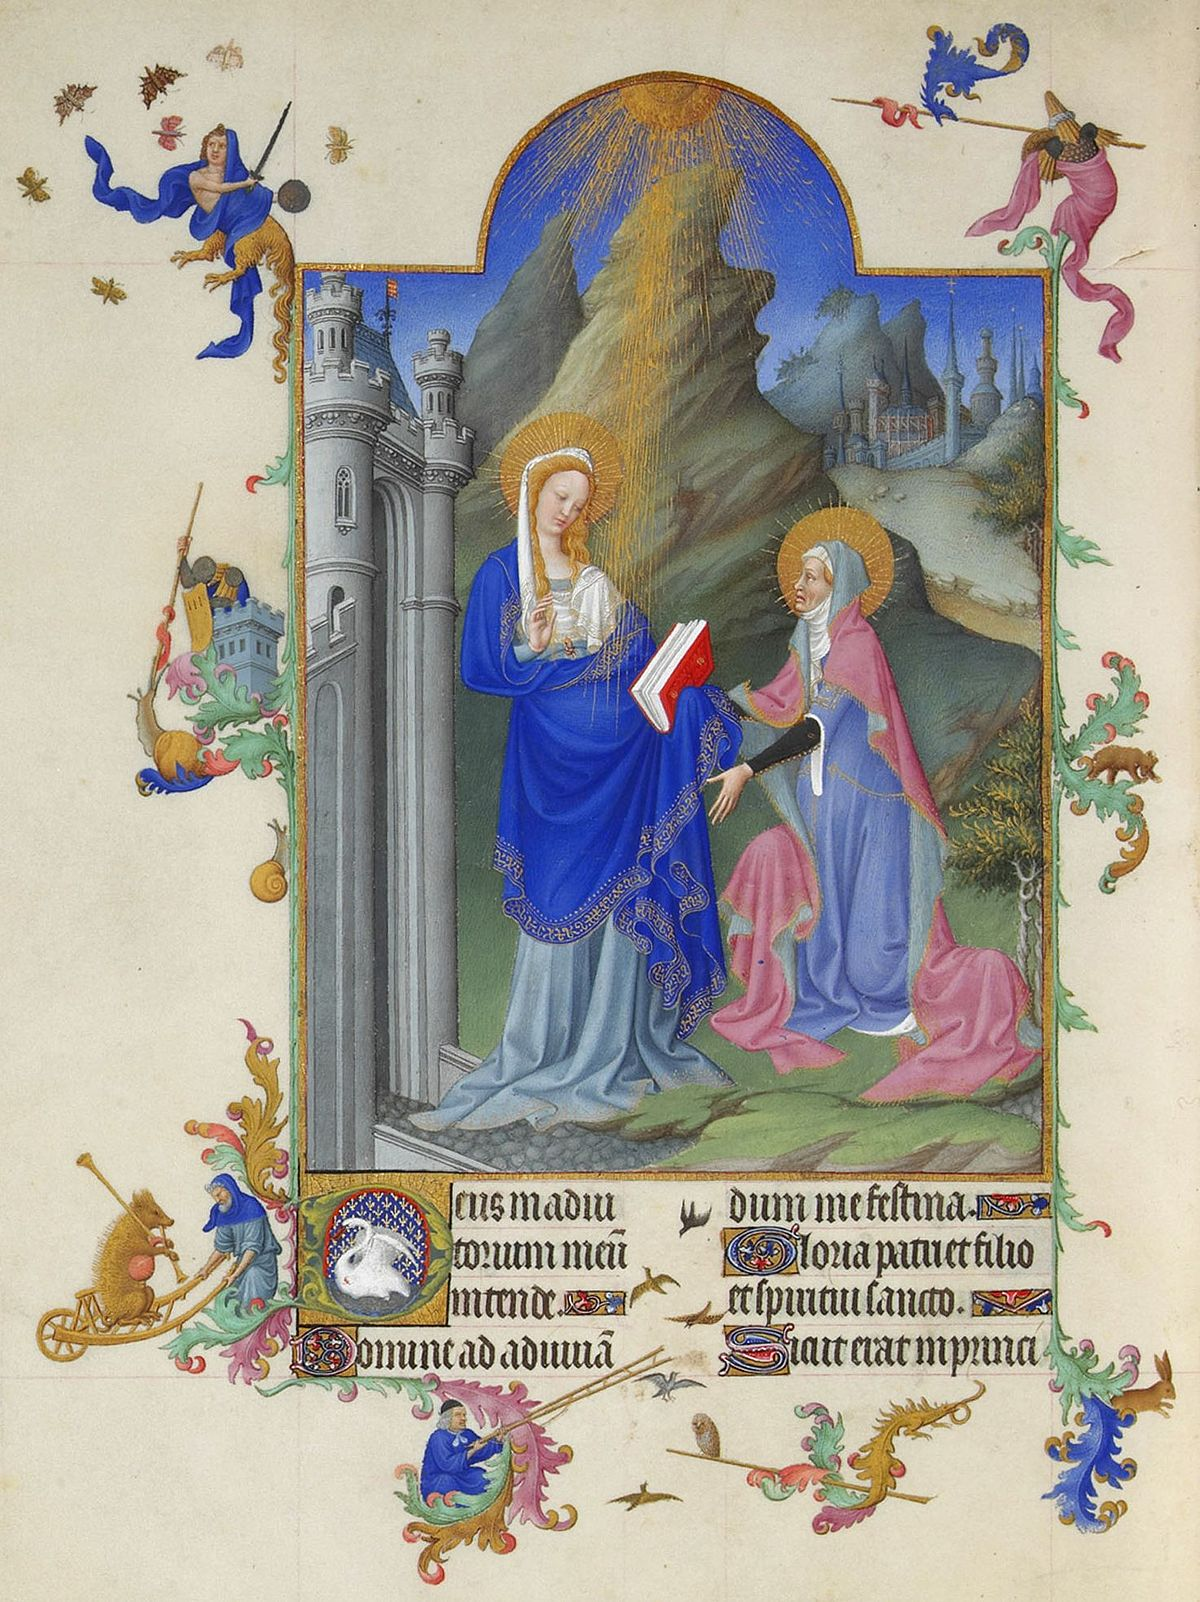 Très Riches Heures – Wikipedia